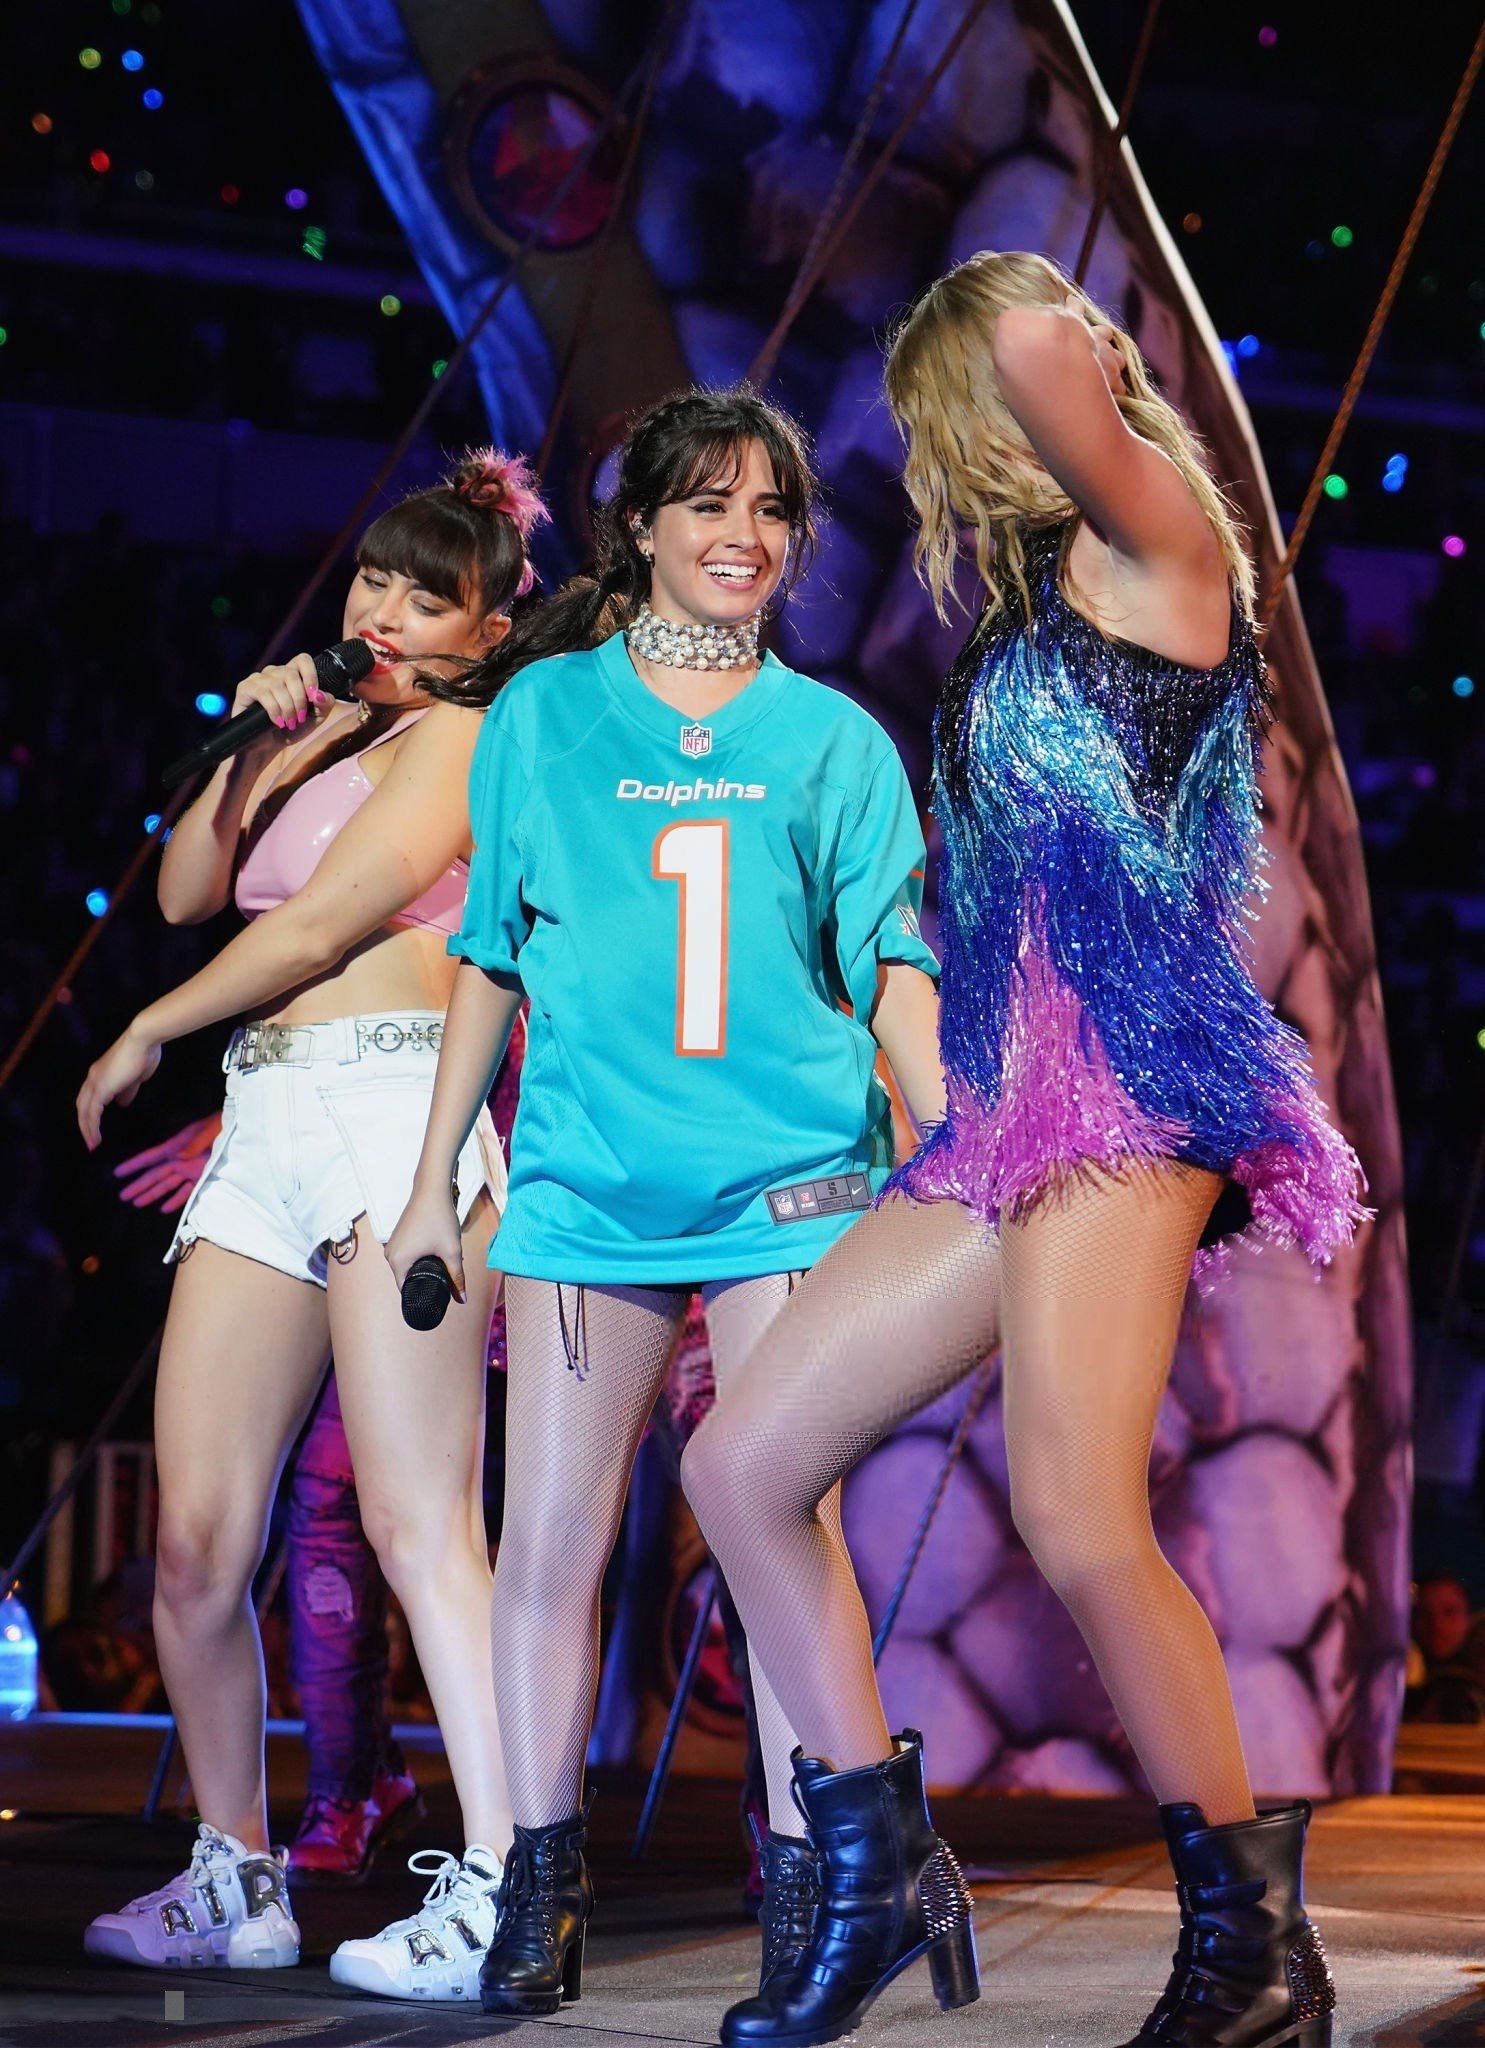 Taylor Swift's Top Whorish Moments From Her1989 World Tour' naked (52 photos)